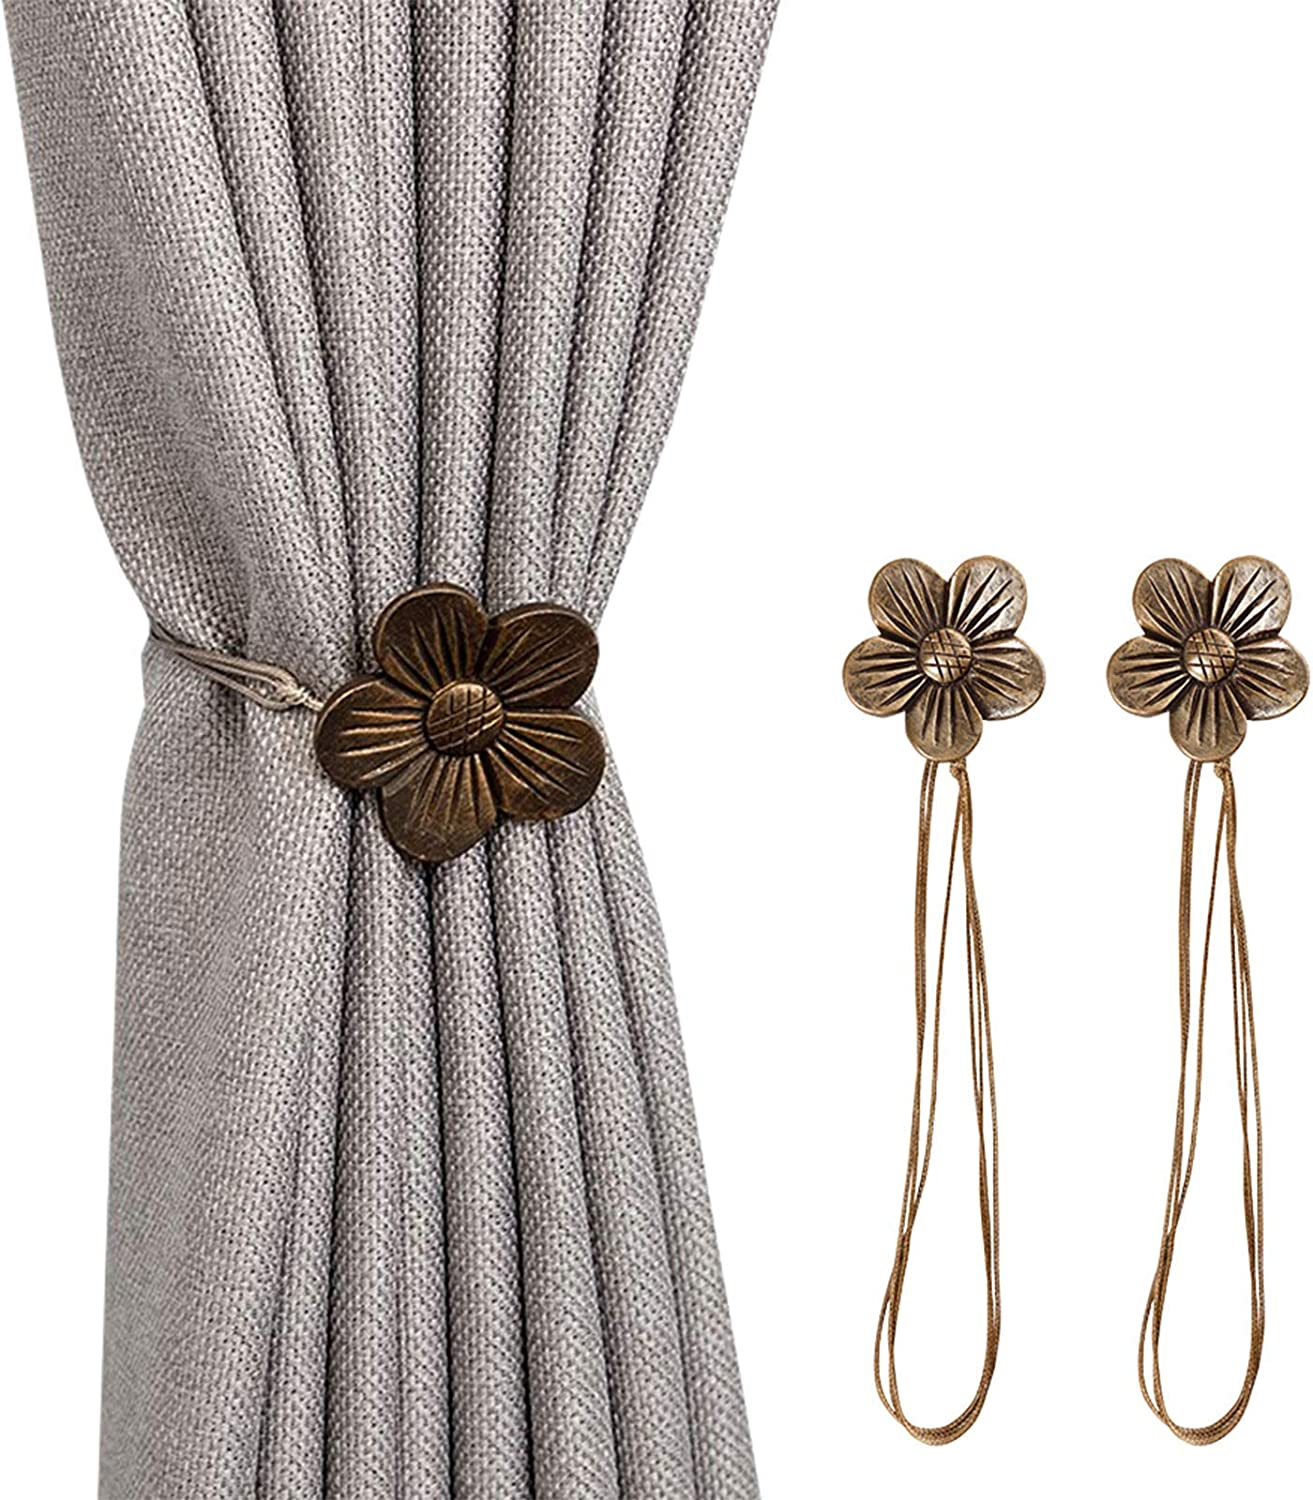 AndEssentials Curtain Tiebacks Magnetic Set of 2 Nautical Coastal Theme Magnetic Tiebacks for Curtains Drapery Holdbacks 2 Pack Outdoor Patio Indoor Room Pool Deck Home D/écor for Beach Homes